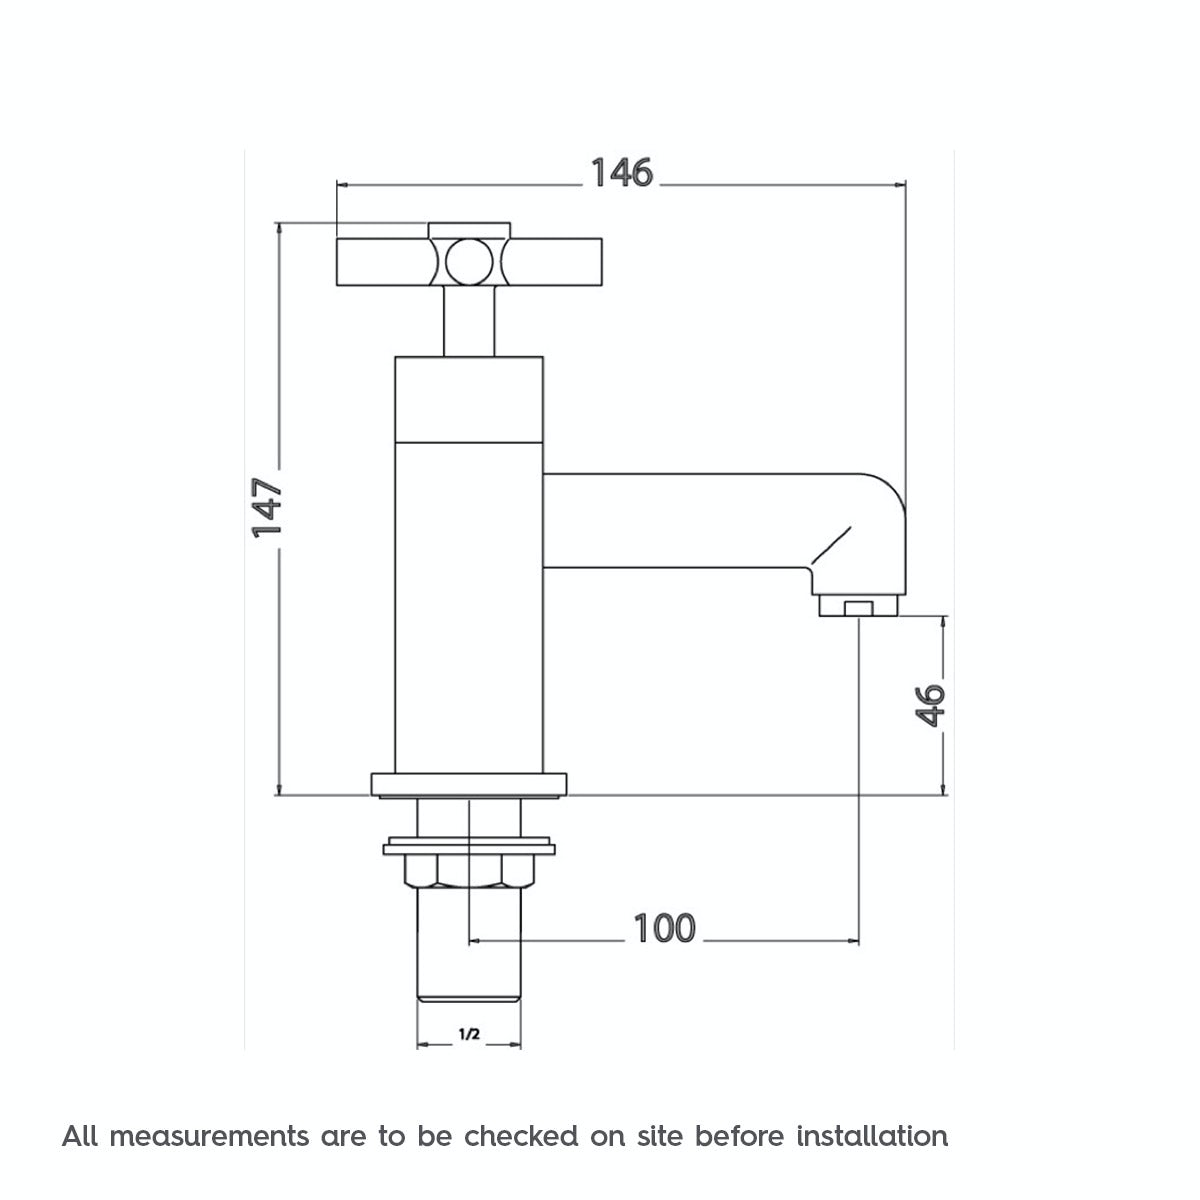 Dimensions for Mode Tate bath pillar taps